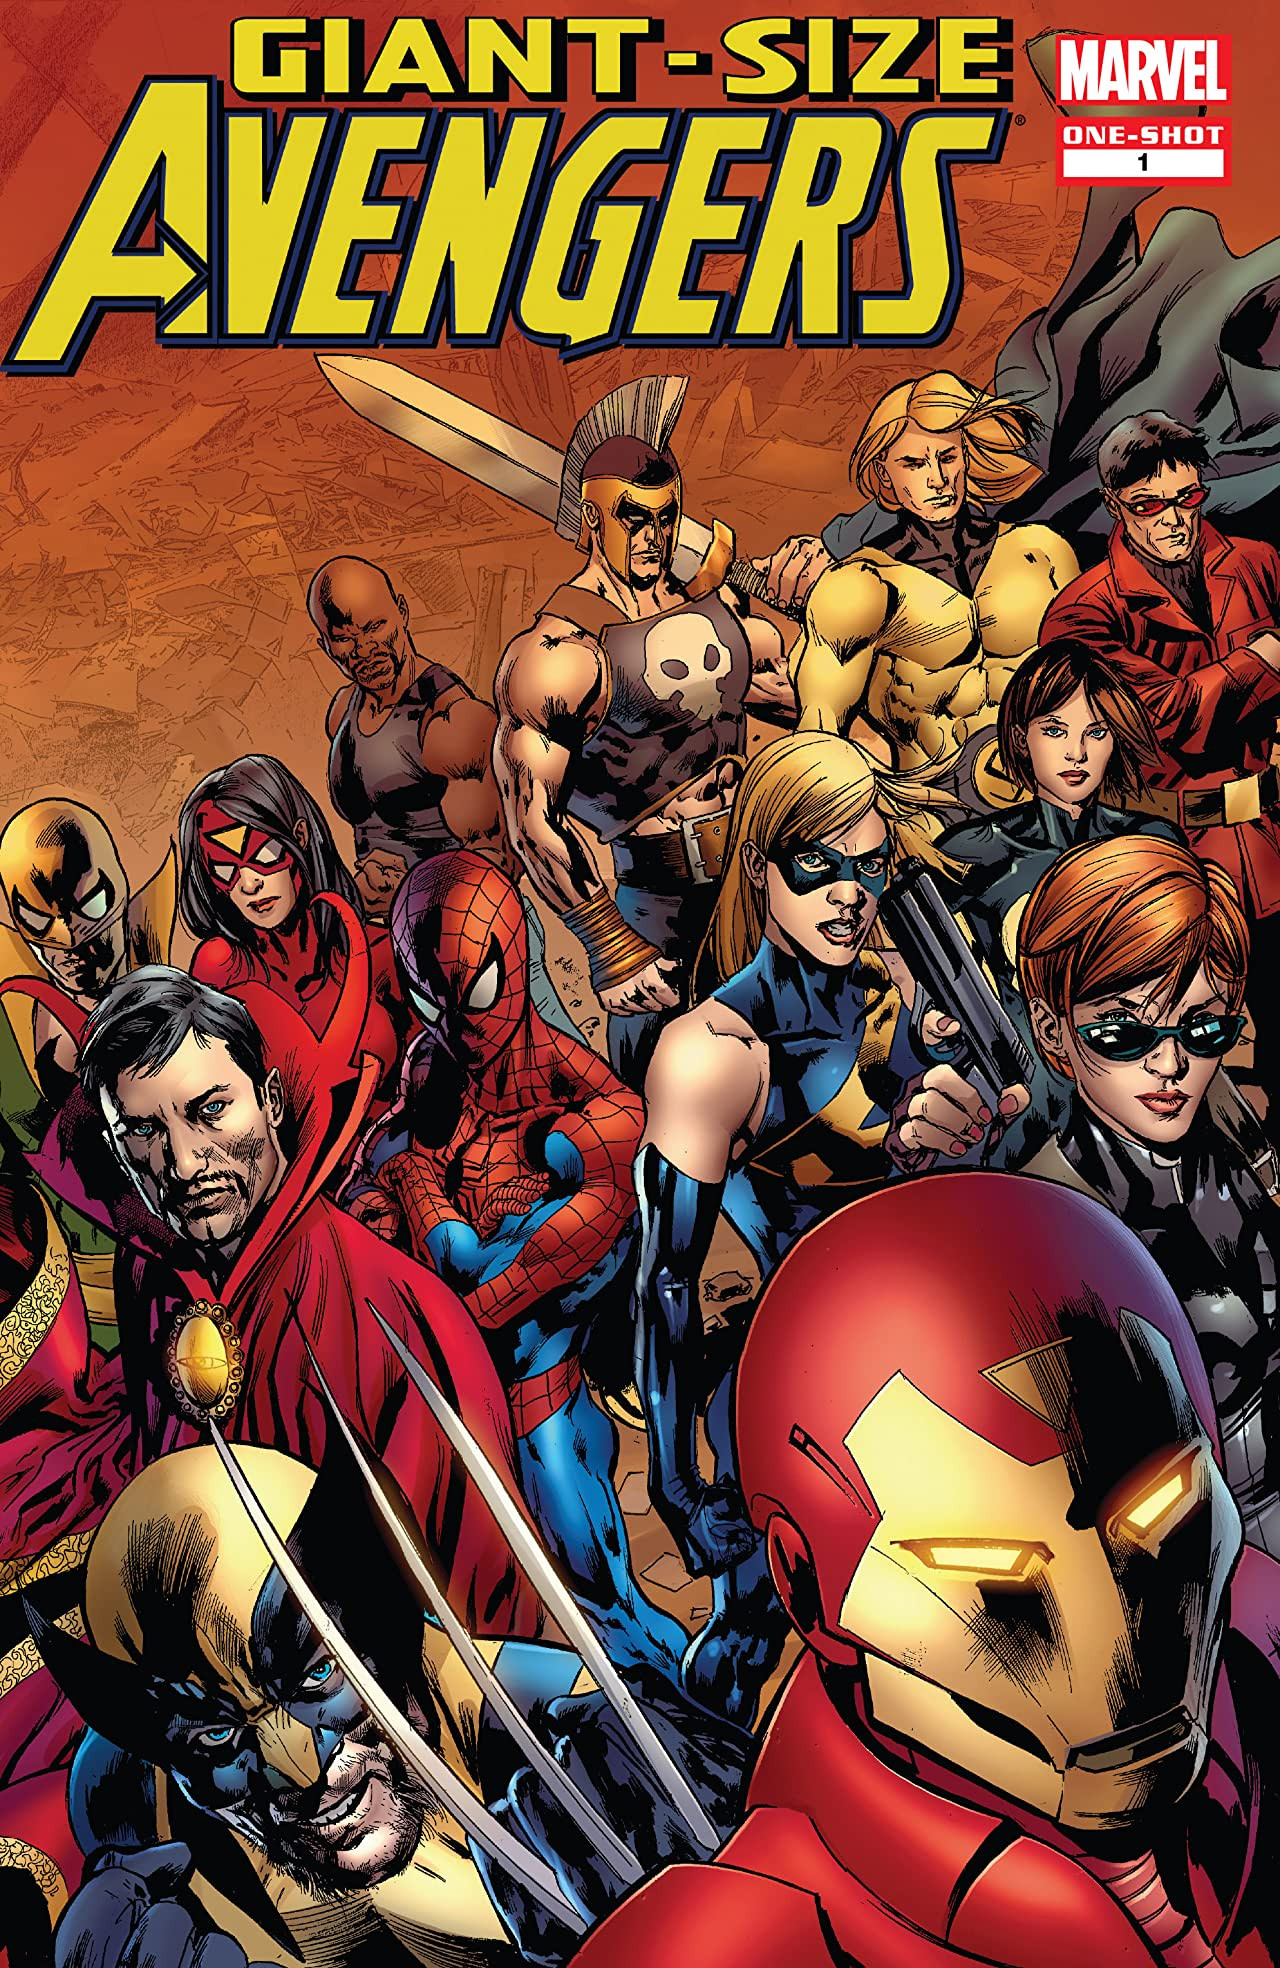 Giant-Size Avengers Vol 2